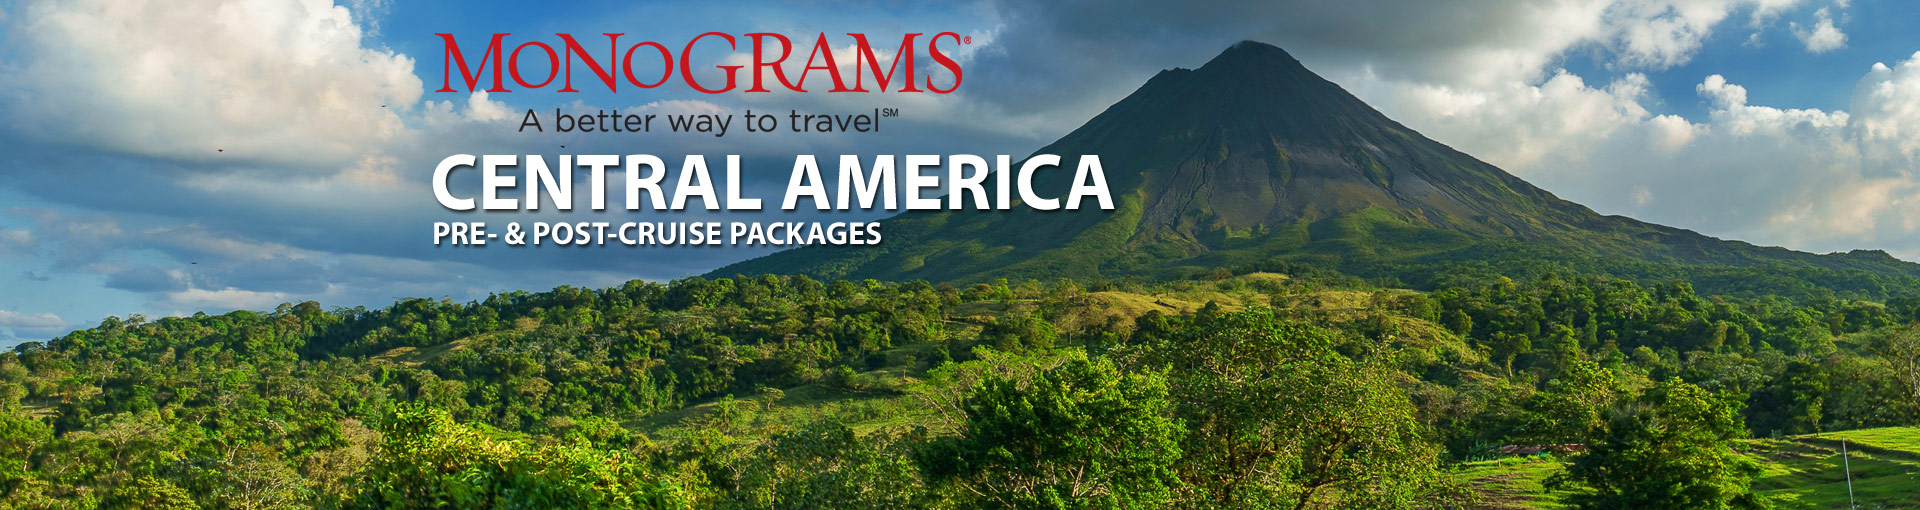 Monograms Central America Vacation Packages